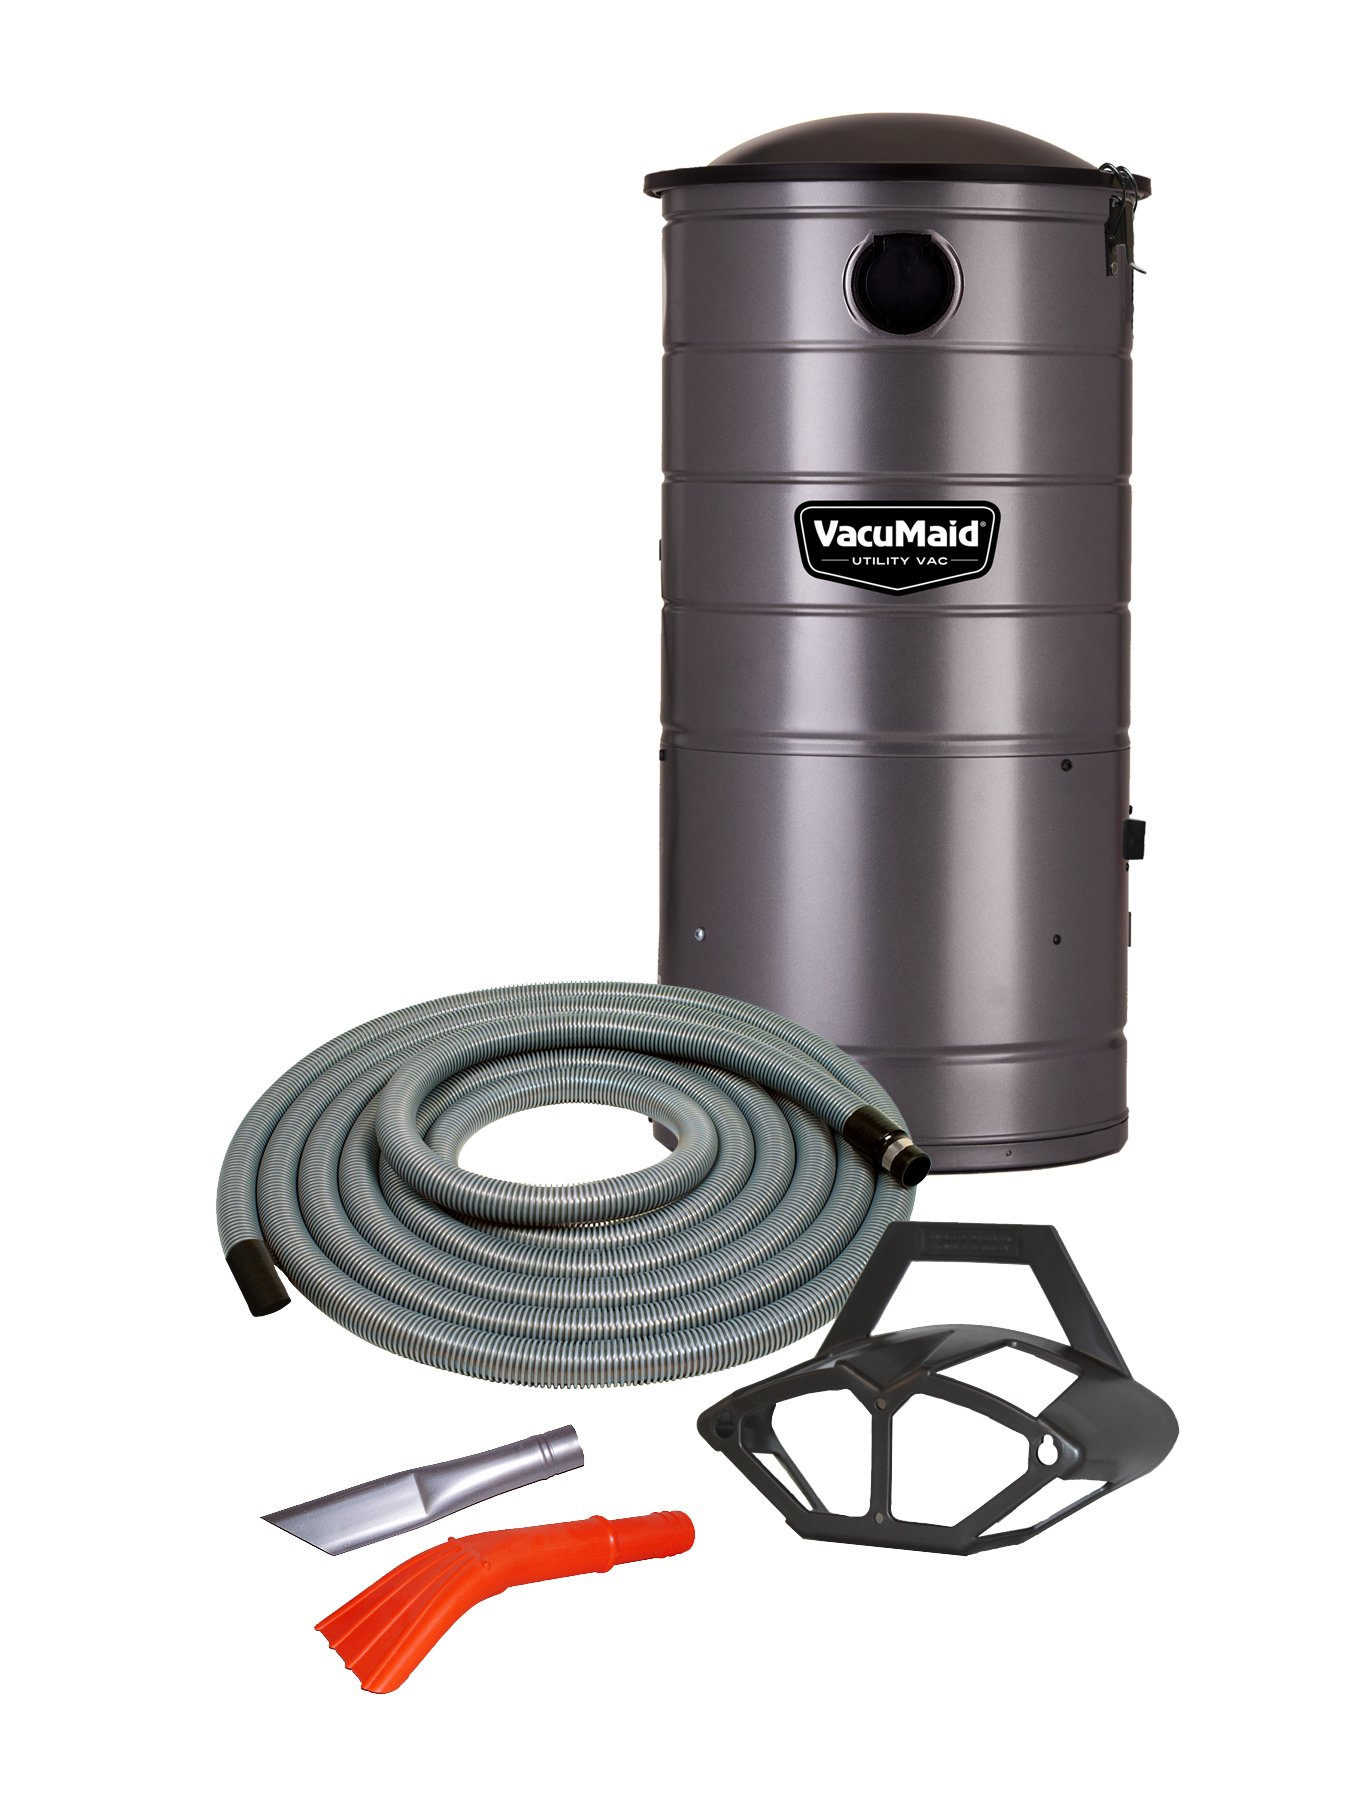 VacuMaid UV150CKP Extended Life Professional Wall Mounted Utility Vacuum with 50 ft. Car Kit Pro